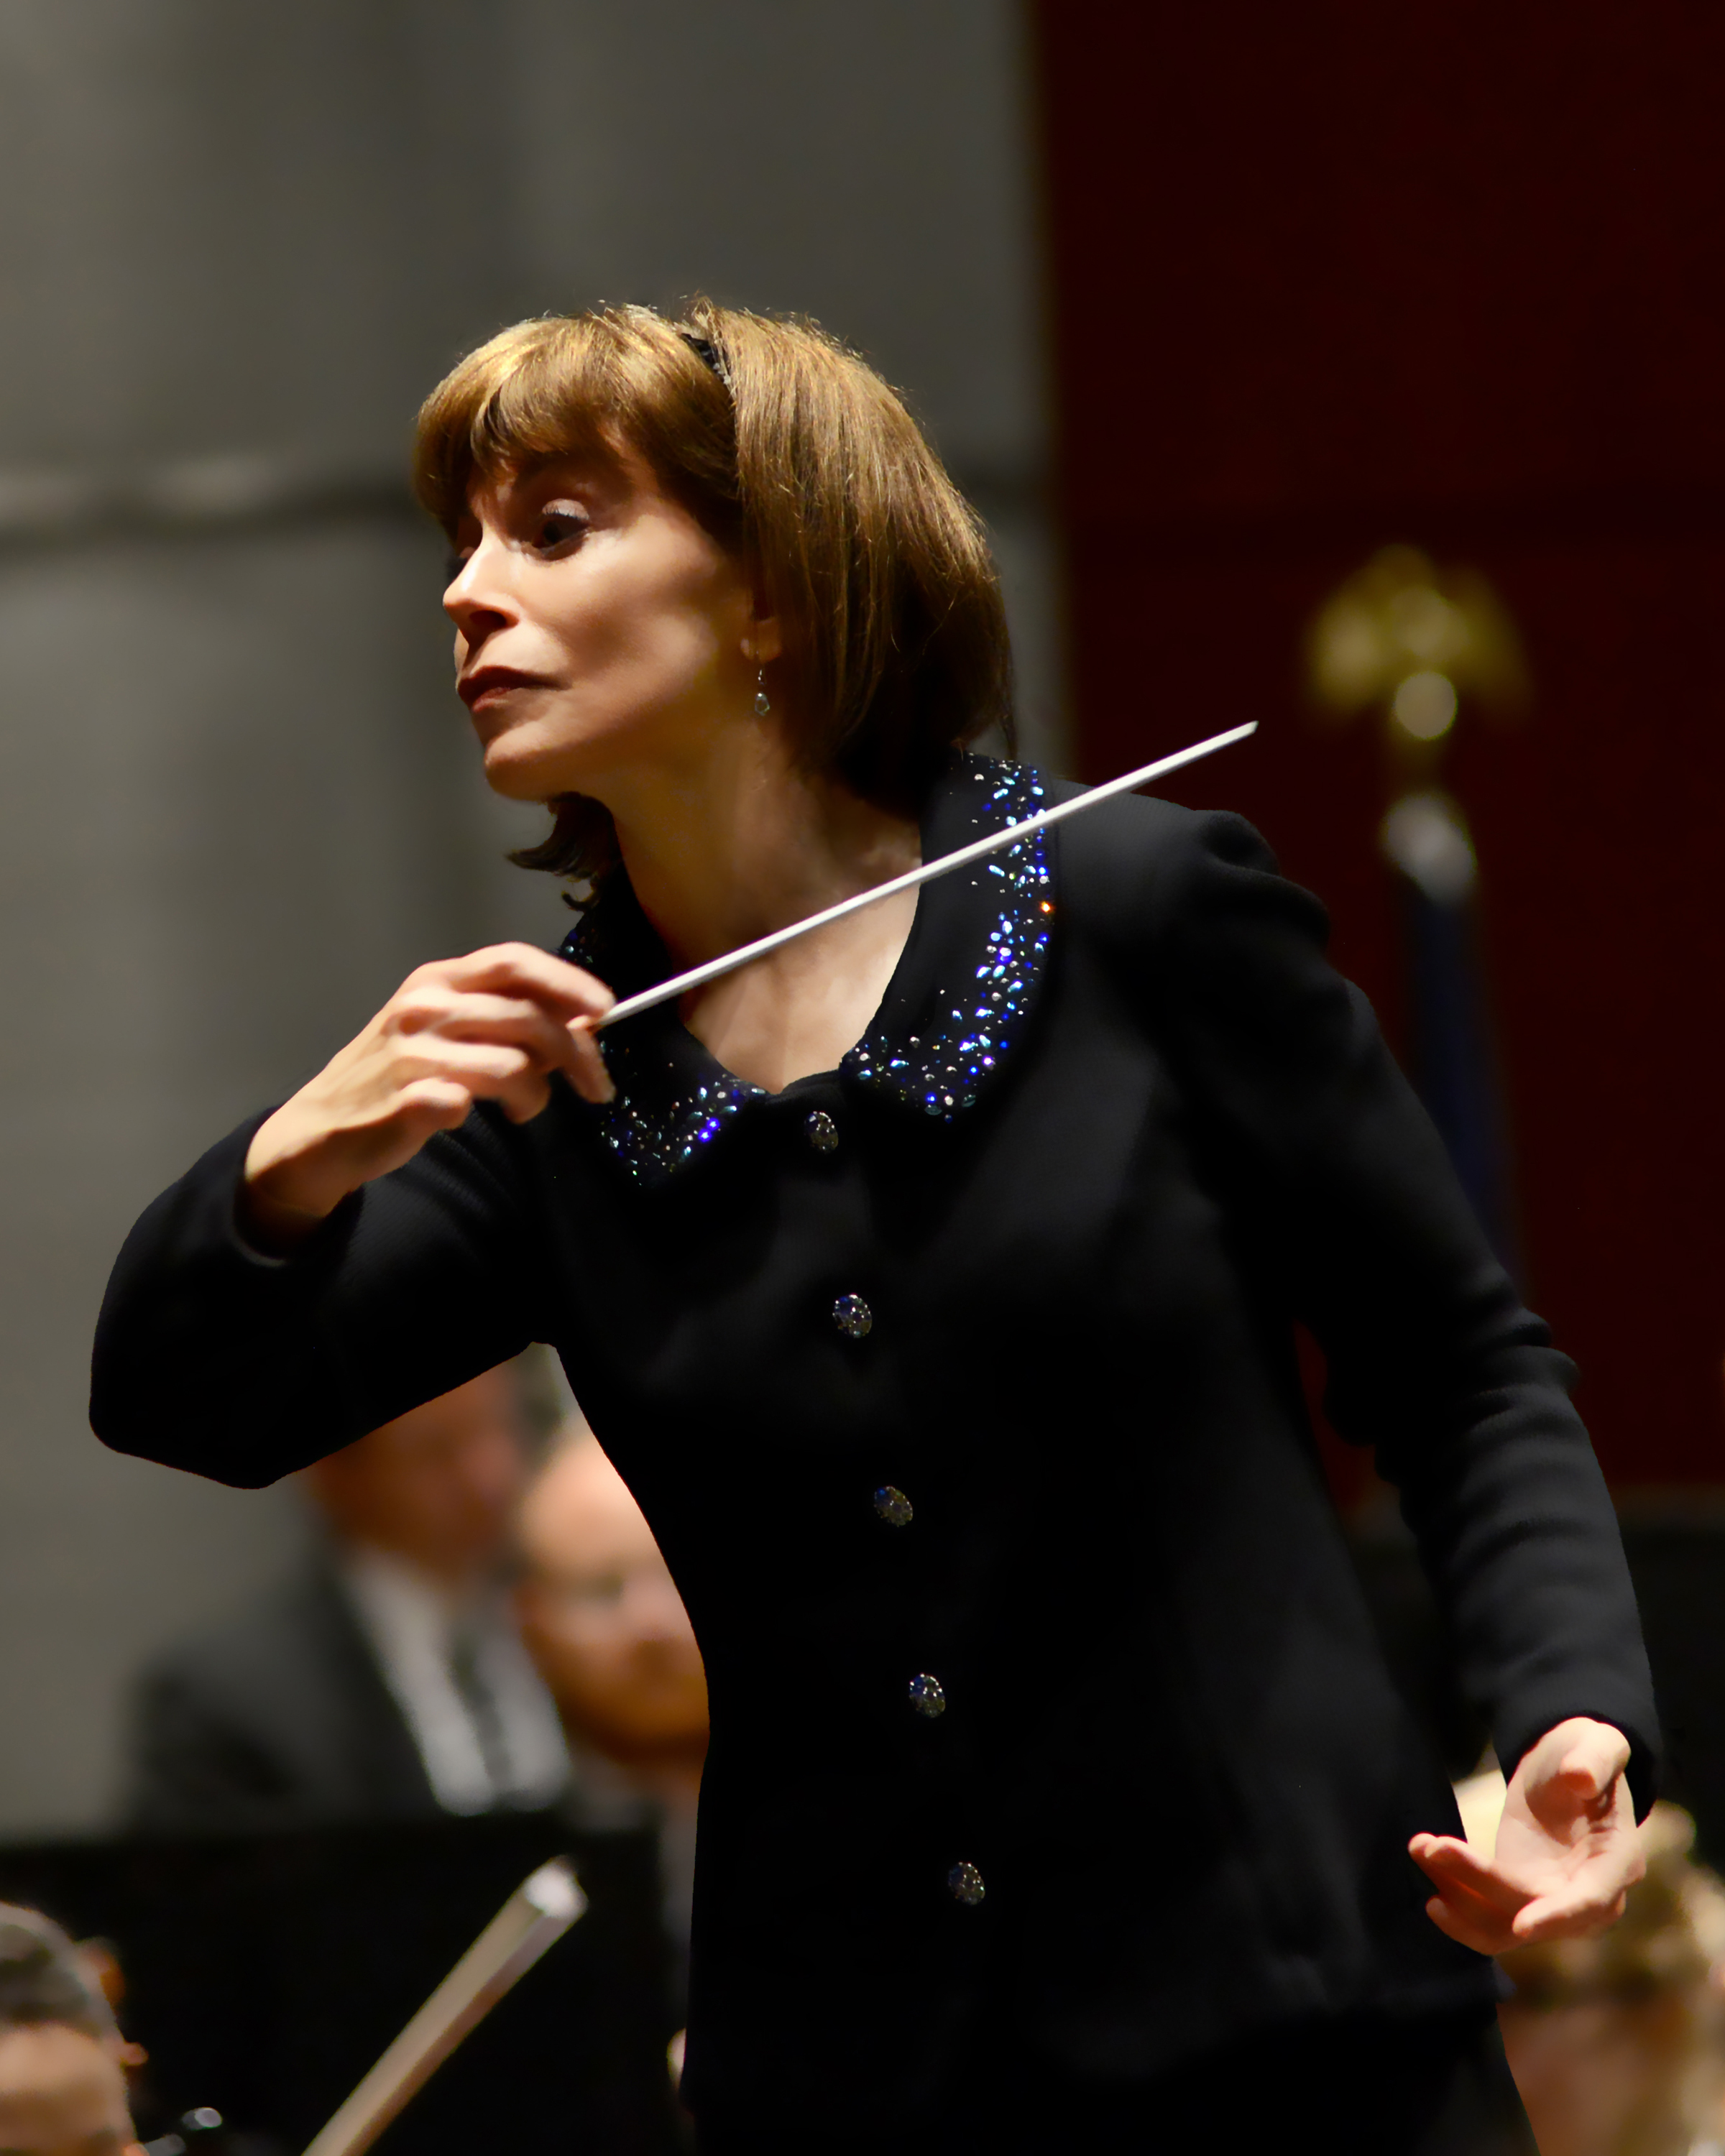 JoAnn Falletta Departs Virginia on Top of Classical World